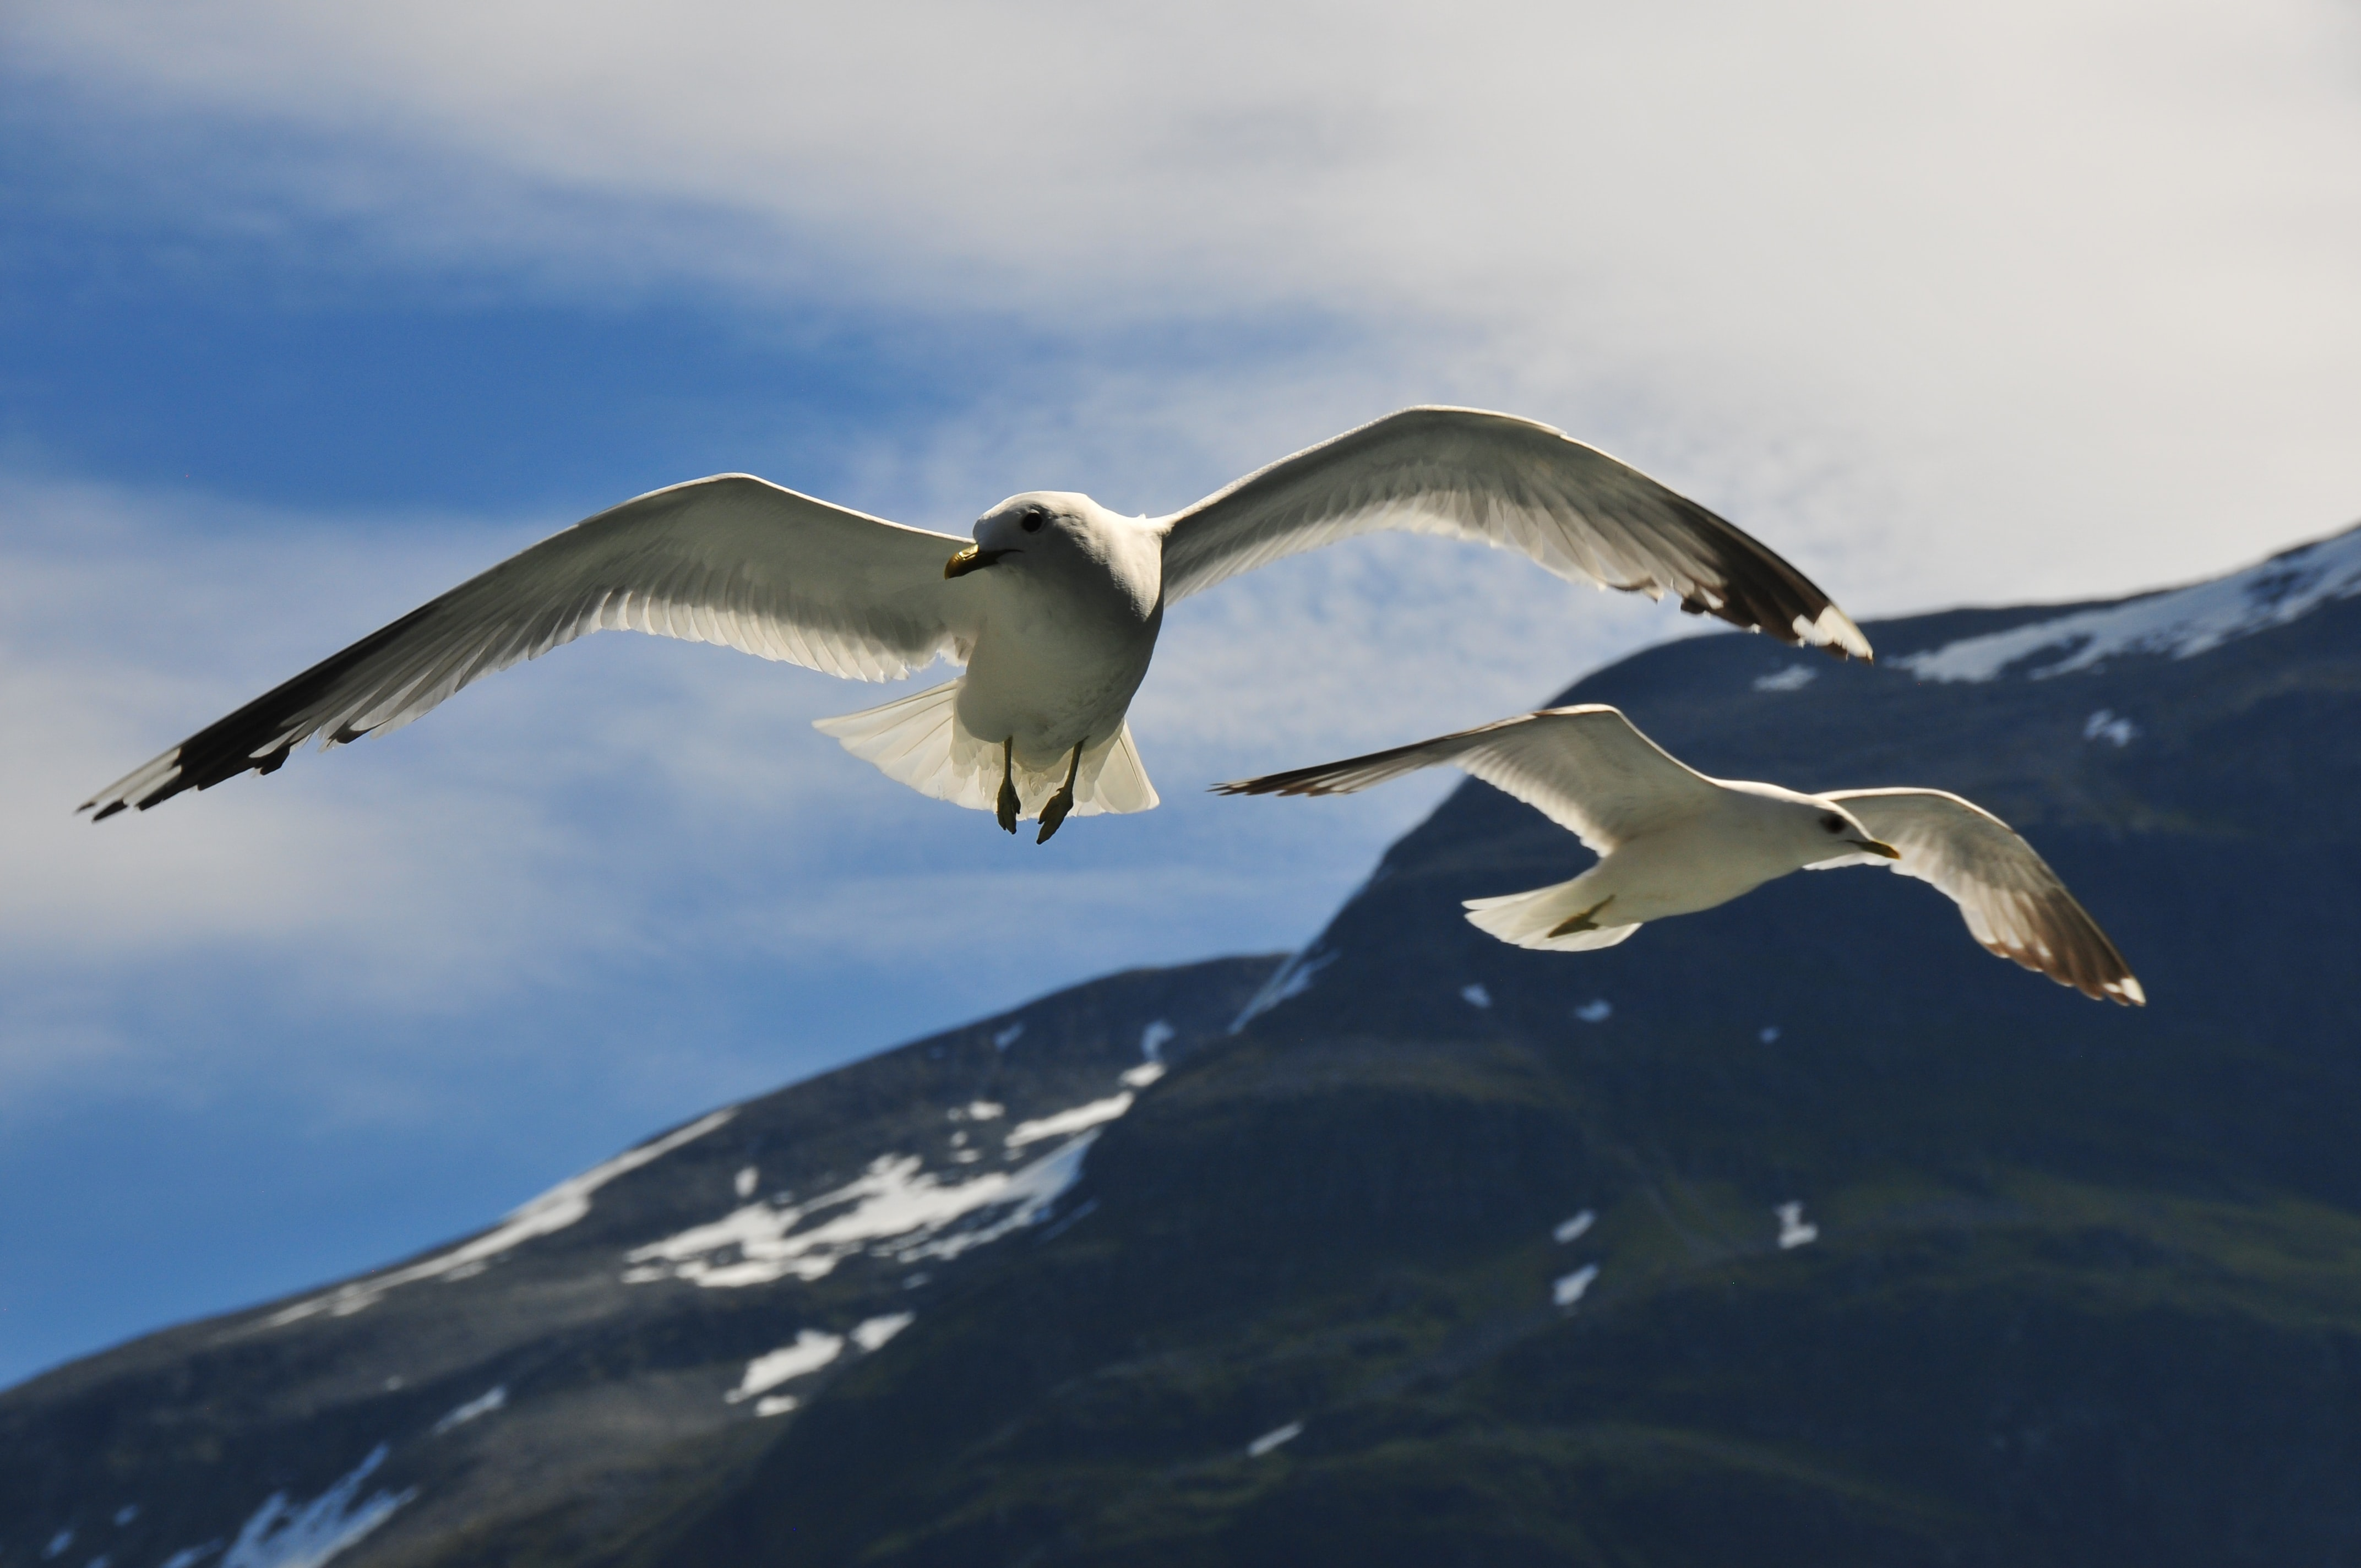 two white bird flying during daytime